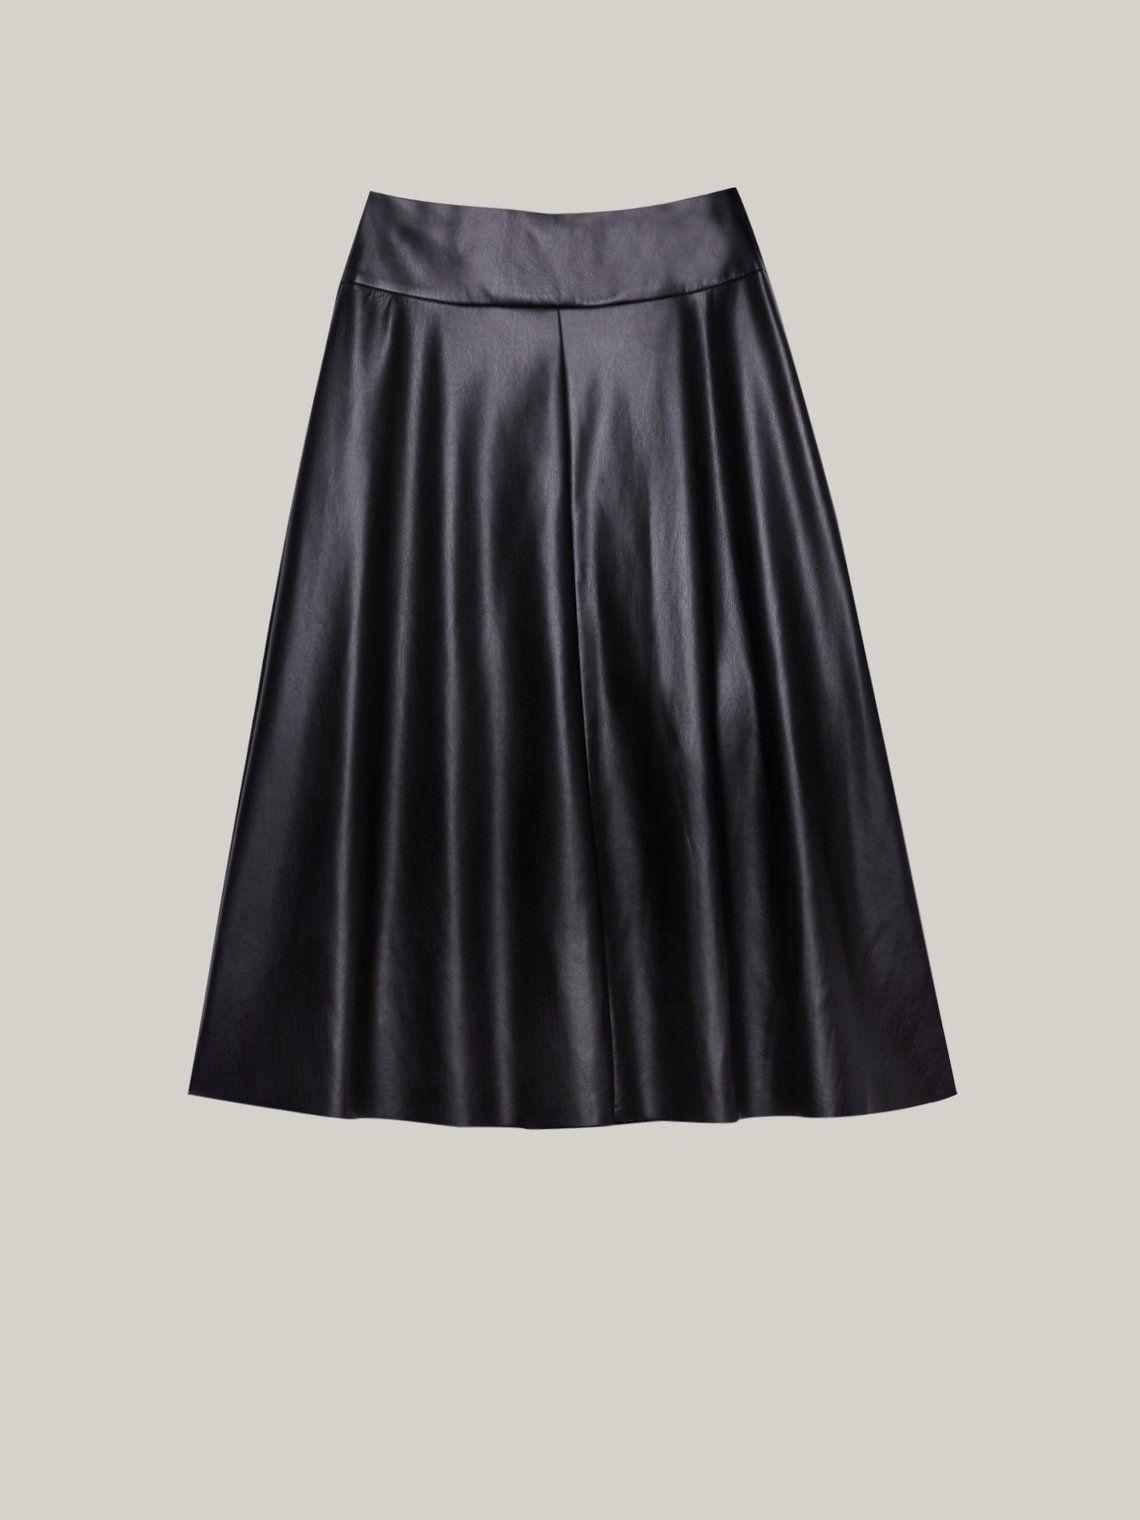 Caractere Faux Leather Flared Skirt 1233A000255N 40